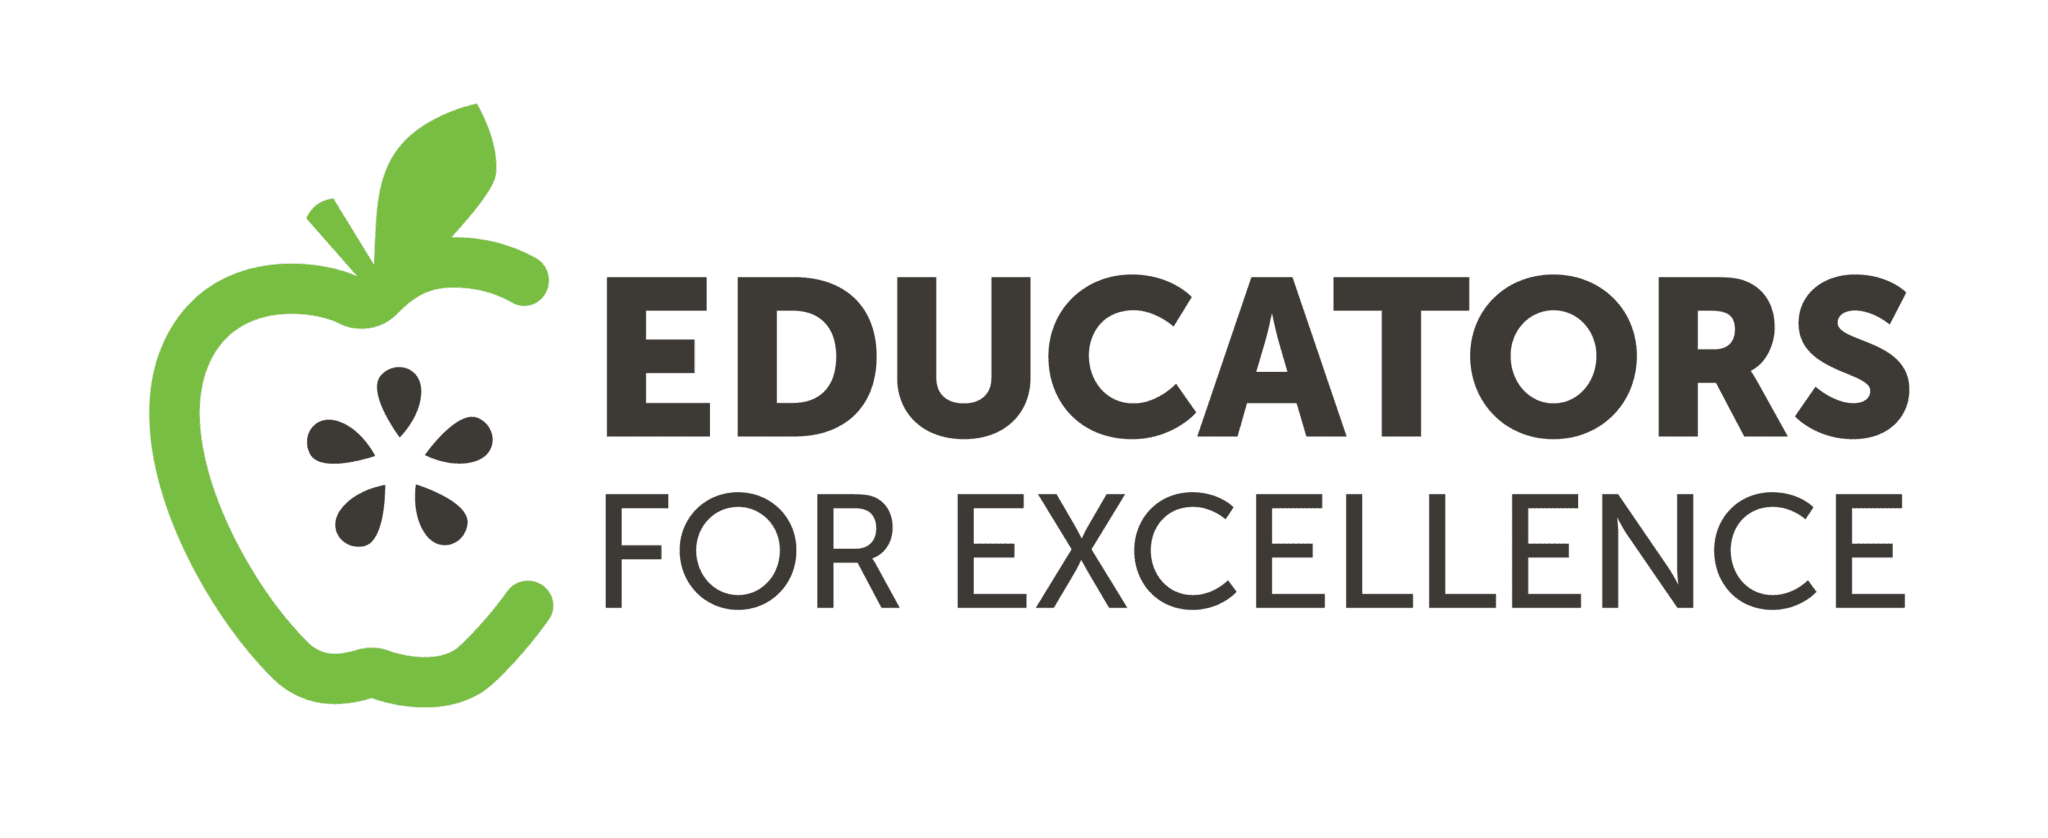 Educators for Excellence logo